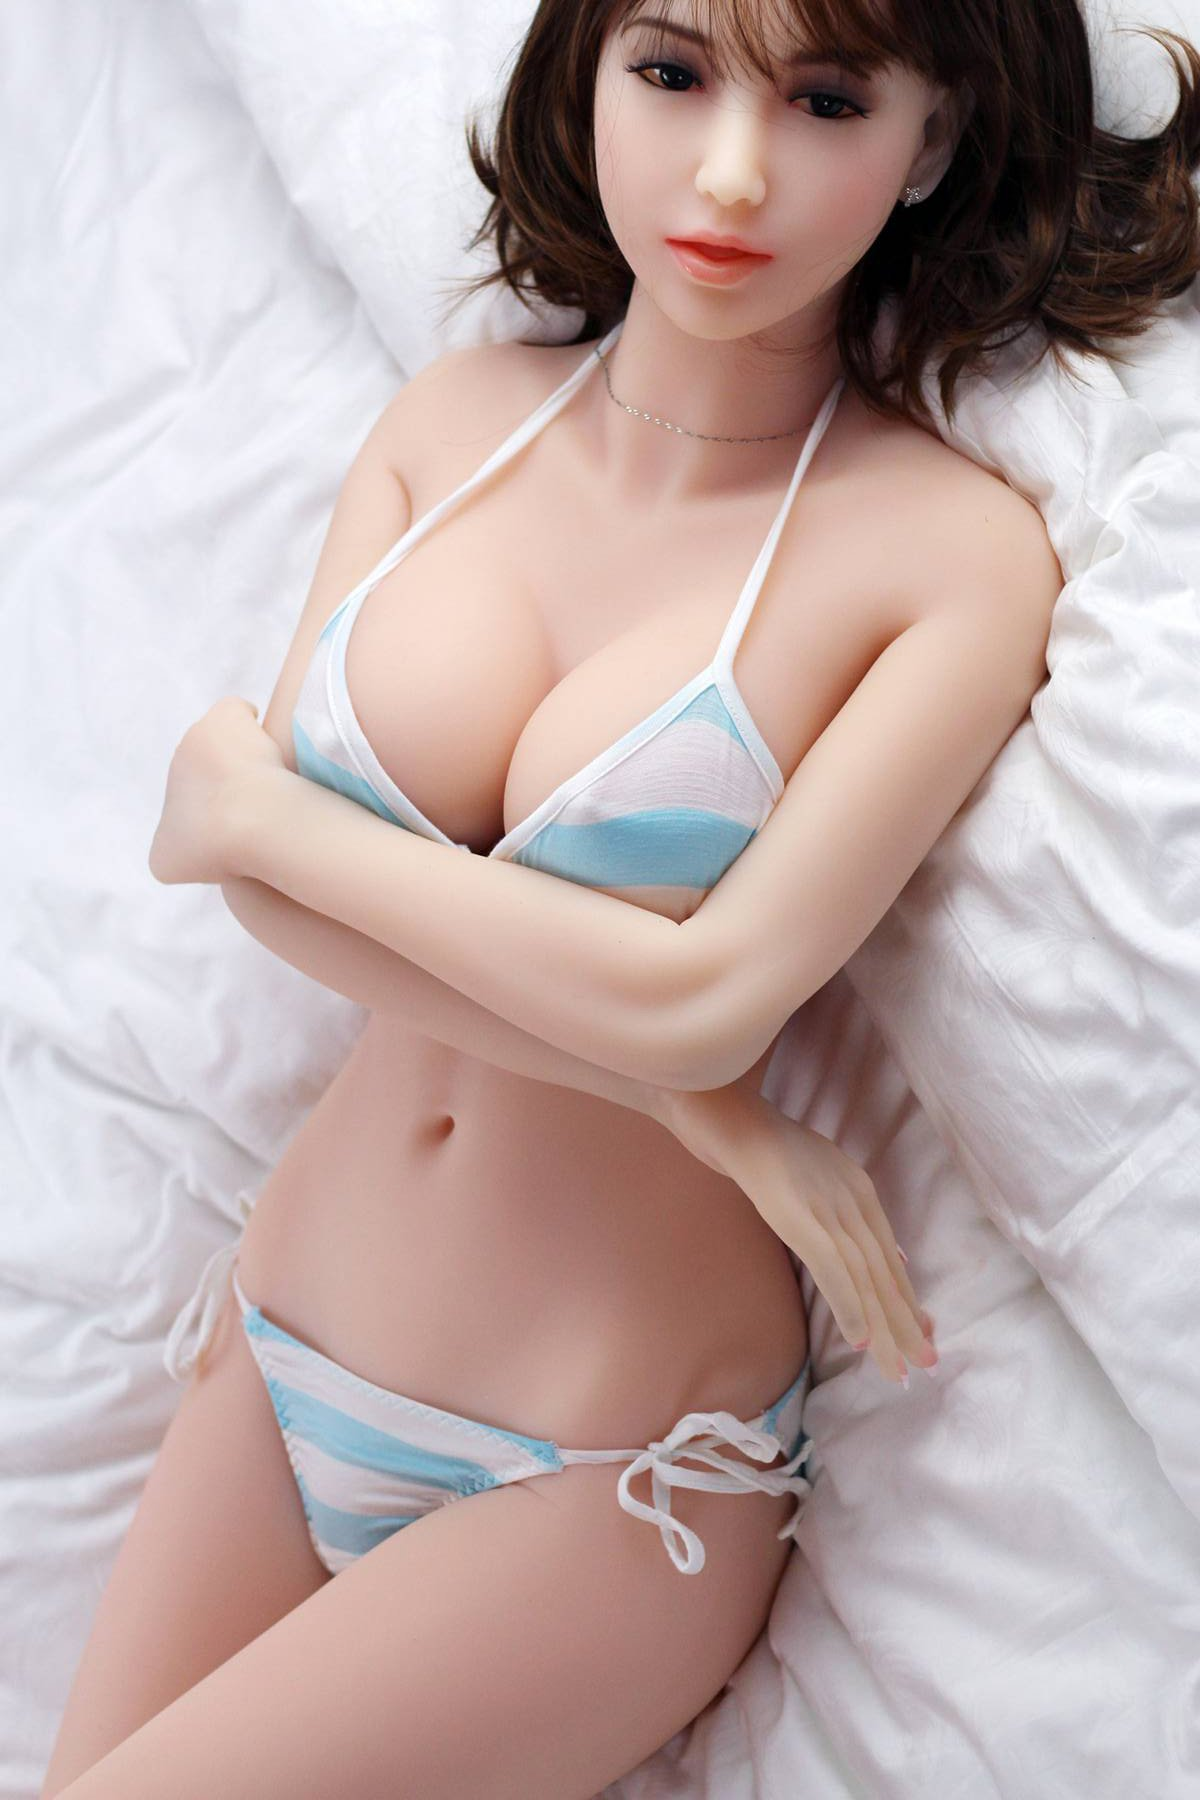 SSCZX Real Love Doll Model 5.18ft with TPE Entity Body Ultra Realistic Adult Toy- Send from TX,US by SSCZX (Image #3)